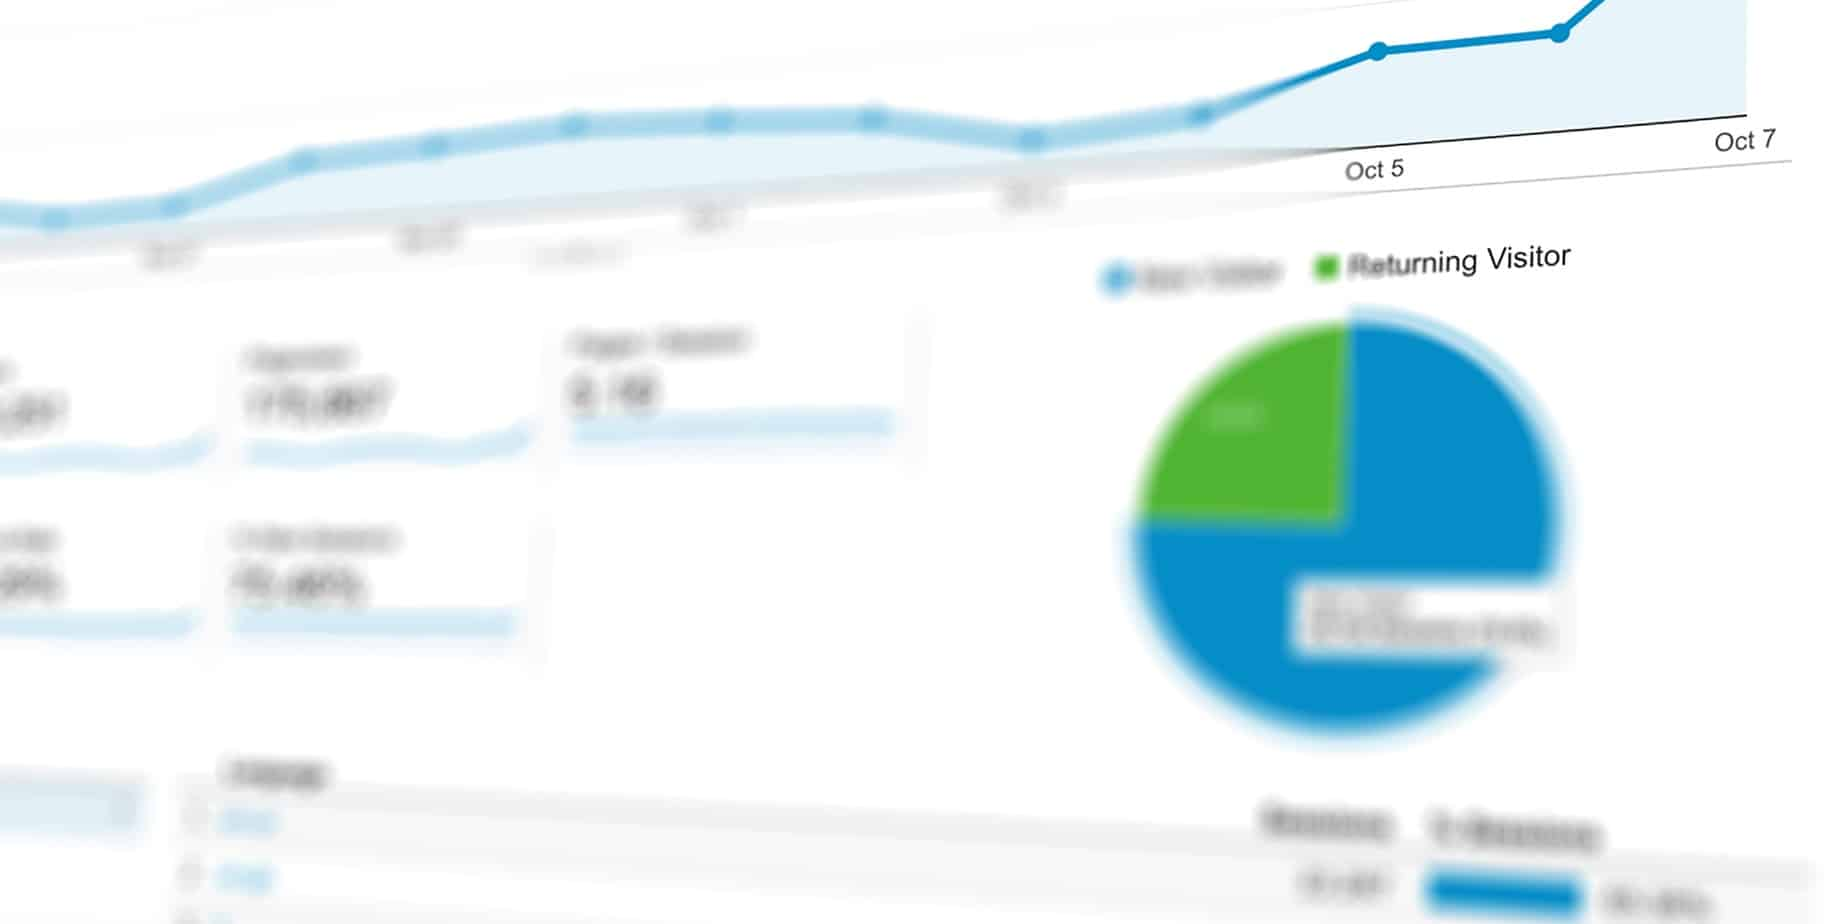 A snapshot of a web analytics data report from Google Analytics